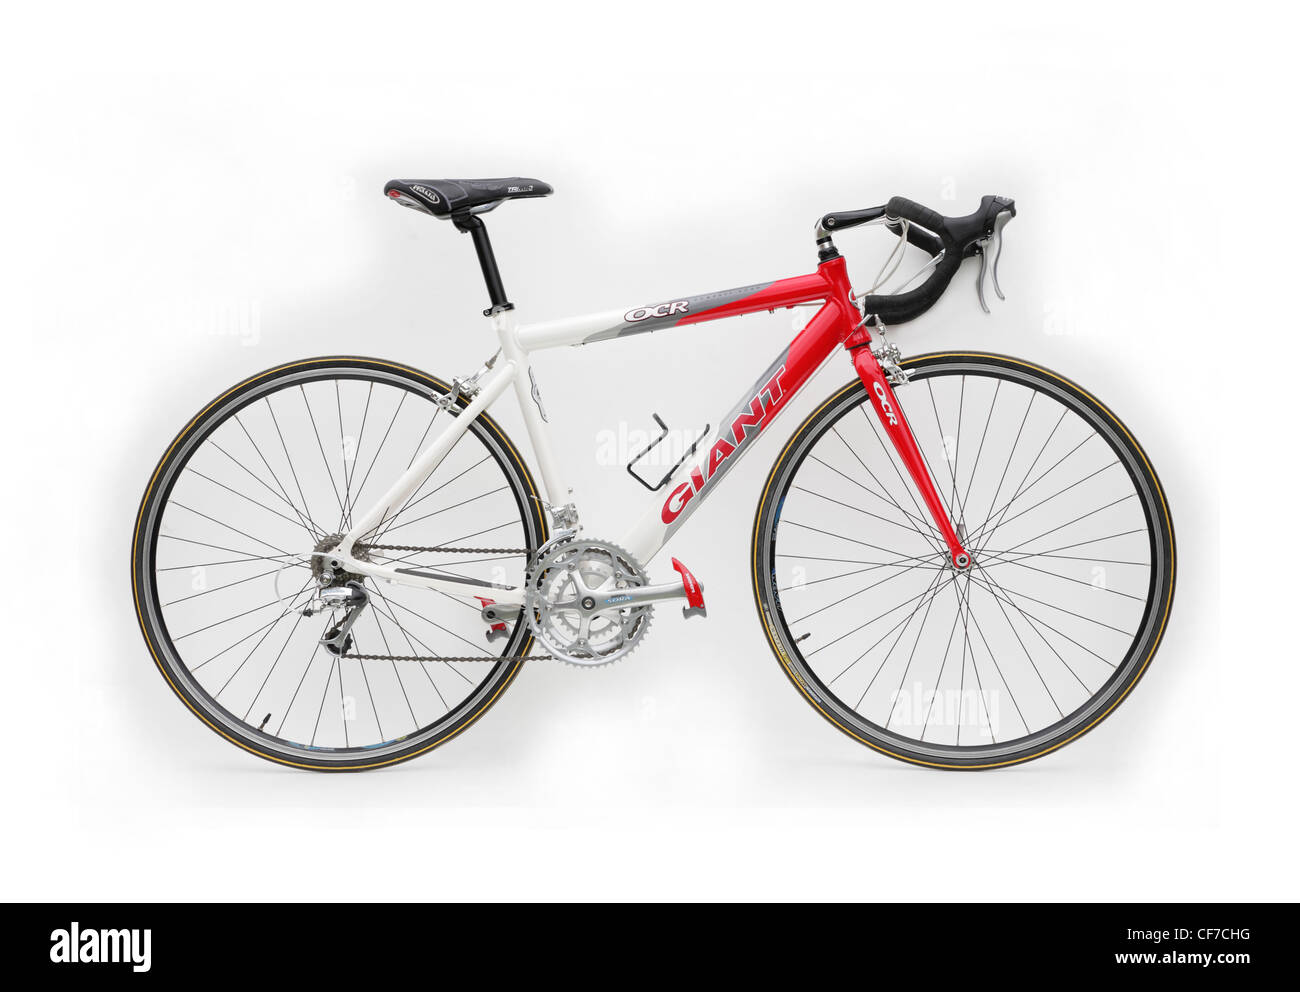 cutout of a Giant brand racing bike cycle with clipless look pedals isolated on against white background - Stock Image